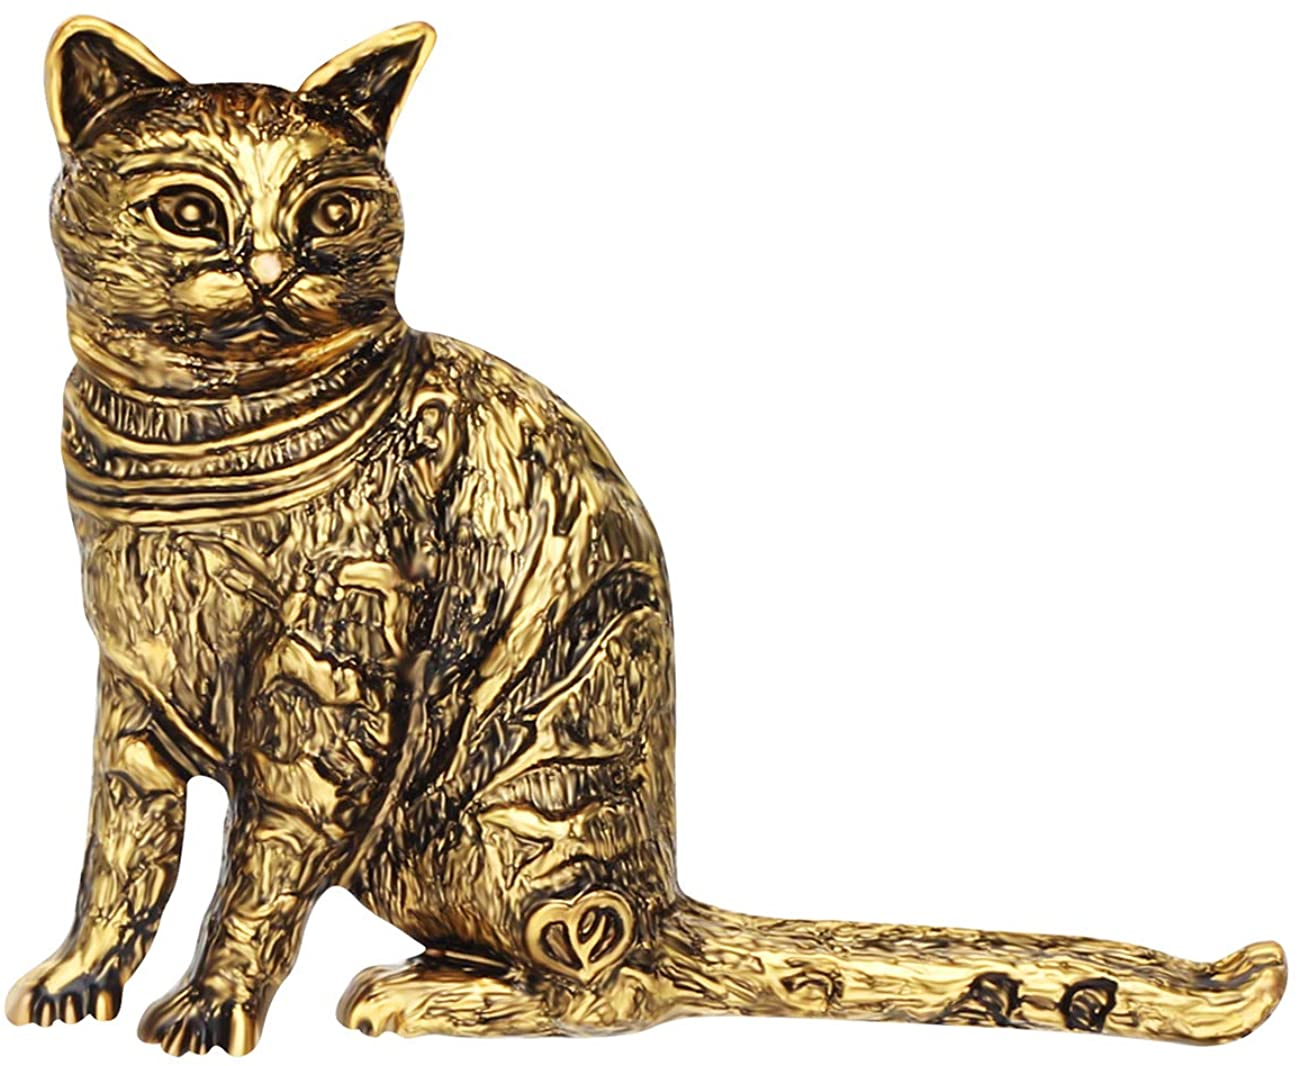 NEWEI Plated Alloy Antique Gold Sliver Sitting Cat Kitten Brooch Pin for Women Girl Scarf Pet Jewlery Charm Party Gift